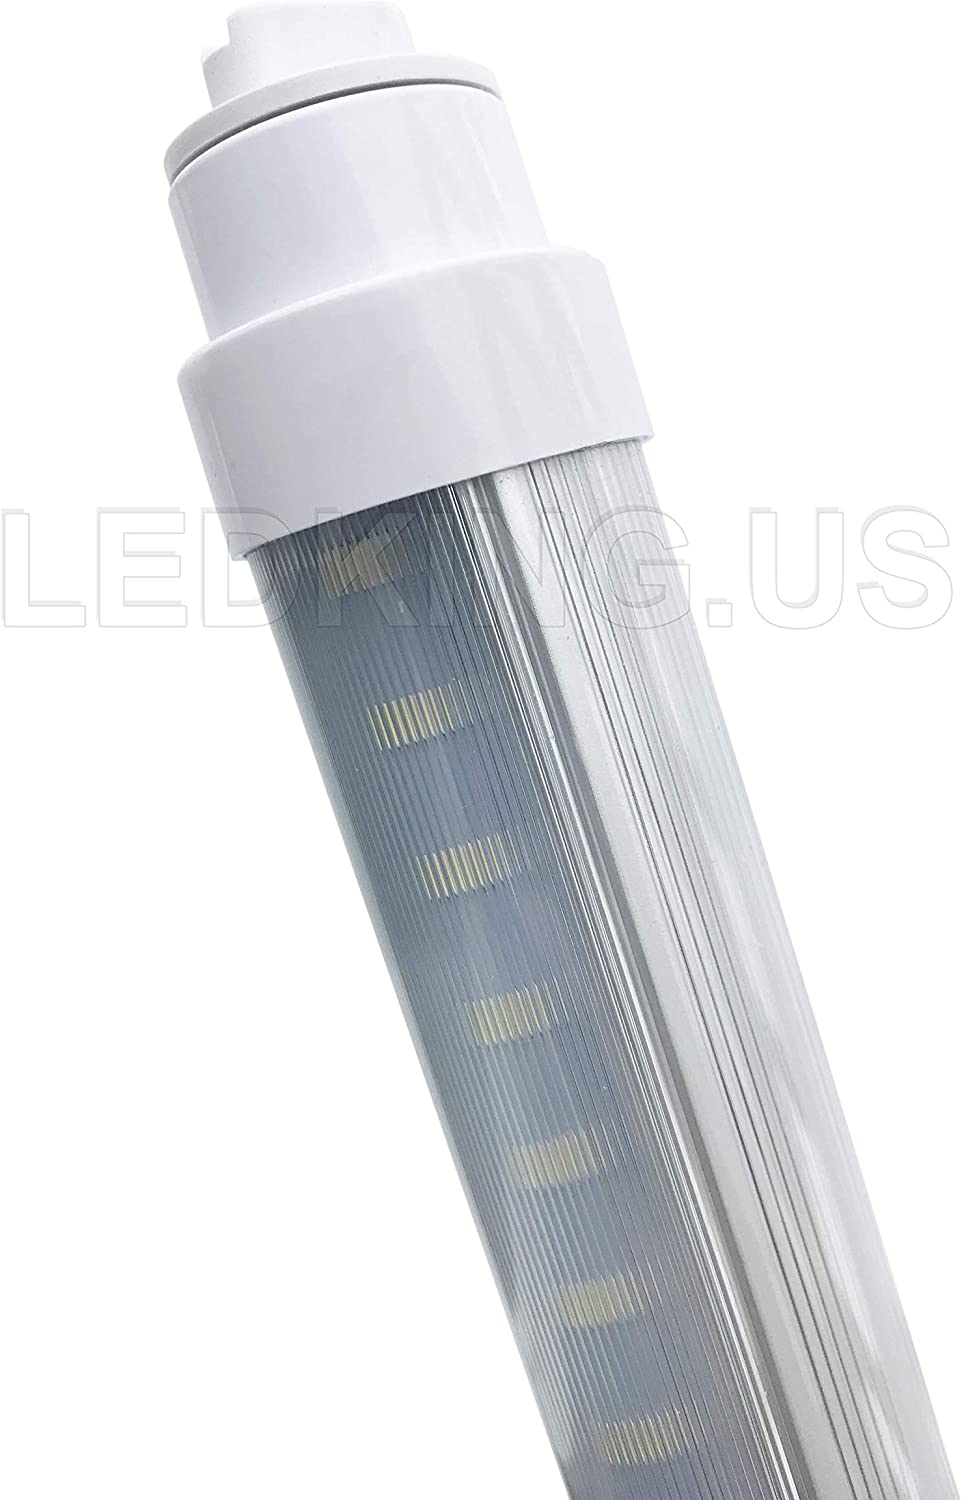 Stainless Steel 6 Length Millennium Filters MAIN-FILTER MN-MF0065915 Direct Interchange for MAIN-filter-MF0065915 6 Length